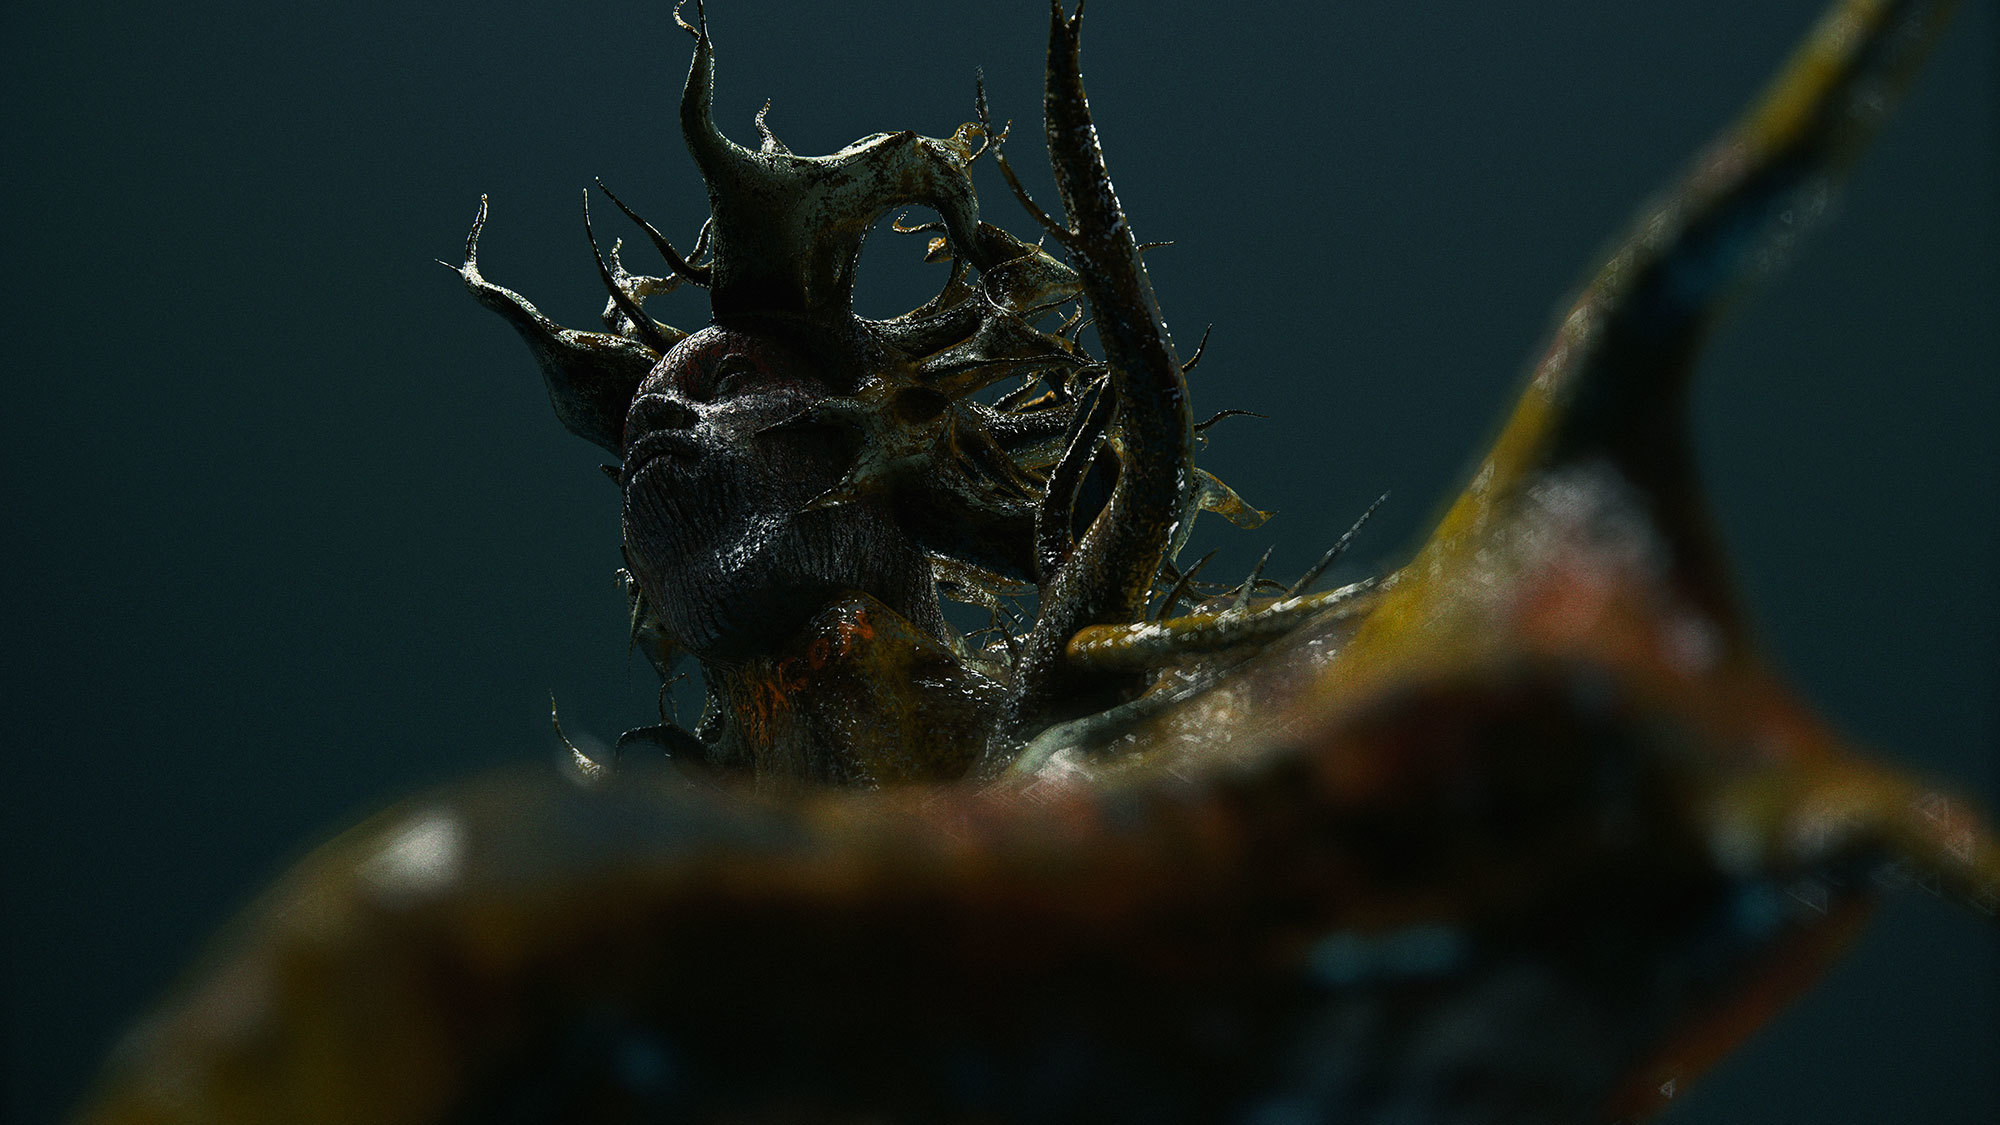 human face in bug form